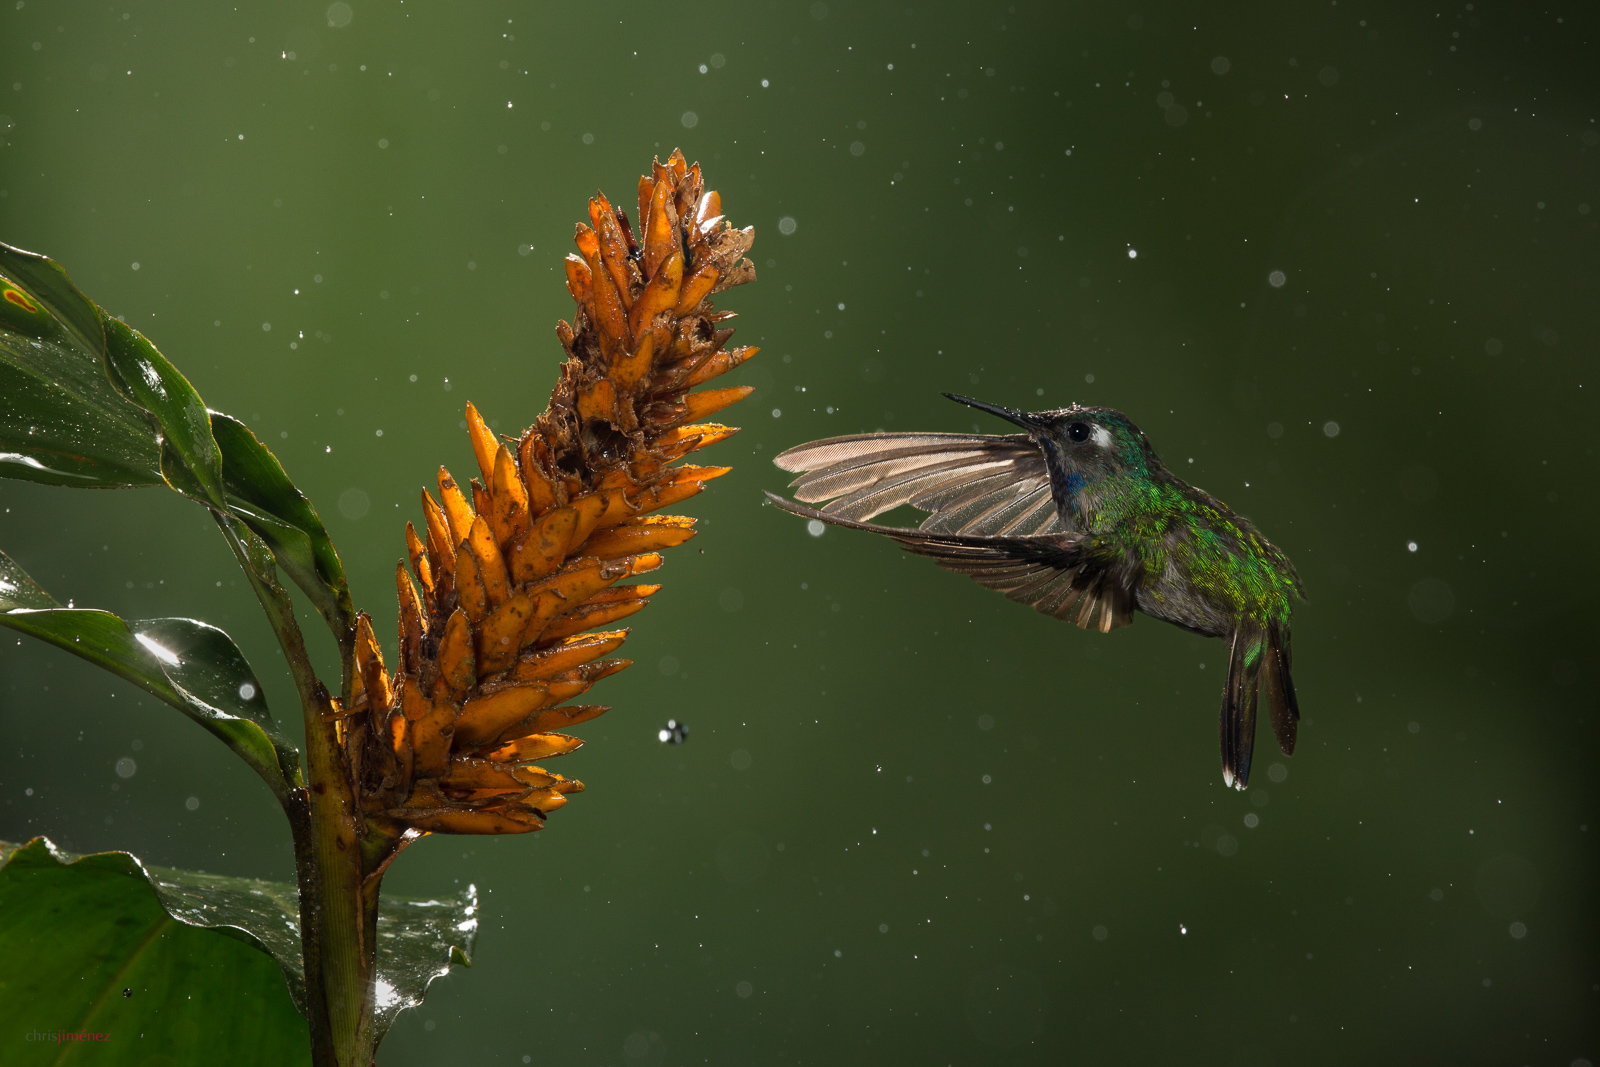 Violet-headed Hummingbird (Klais guimeti) male, feeding from flowers in the rain at the lowlands of Costa Rica